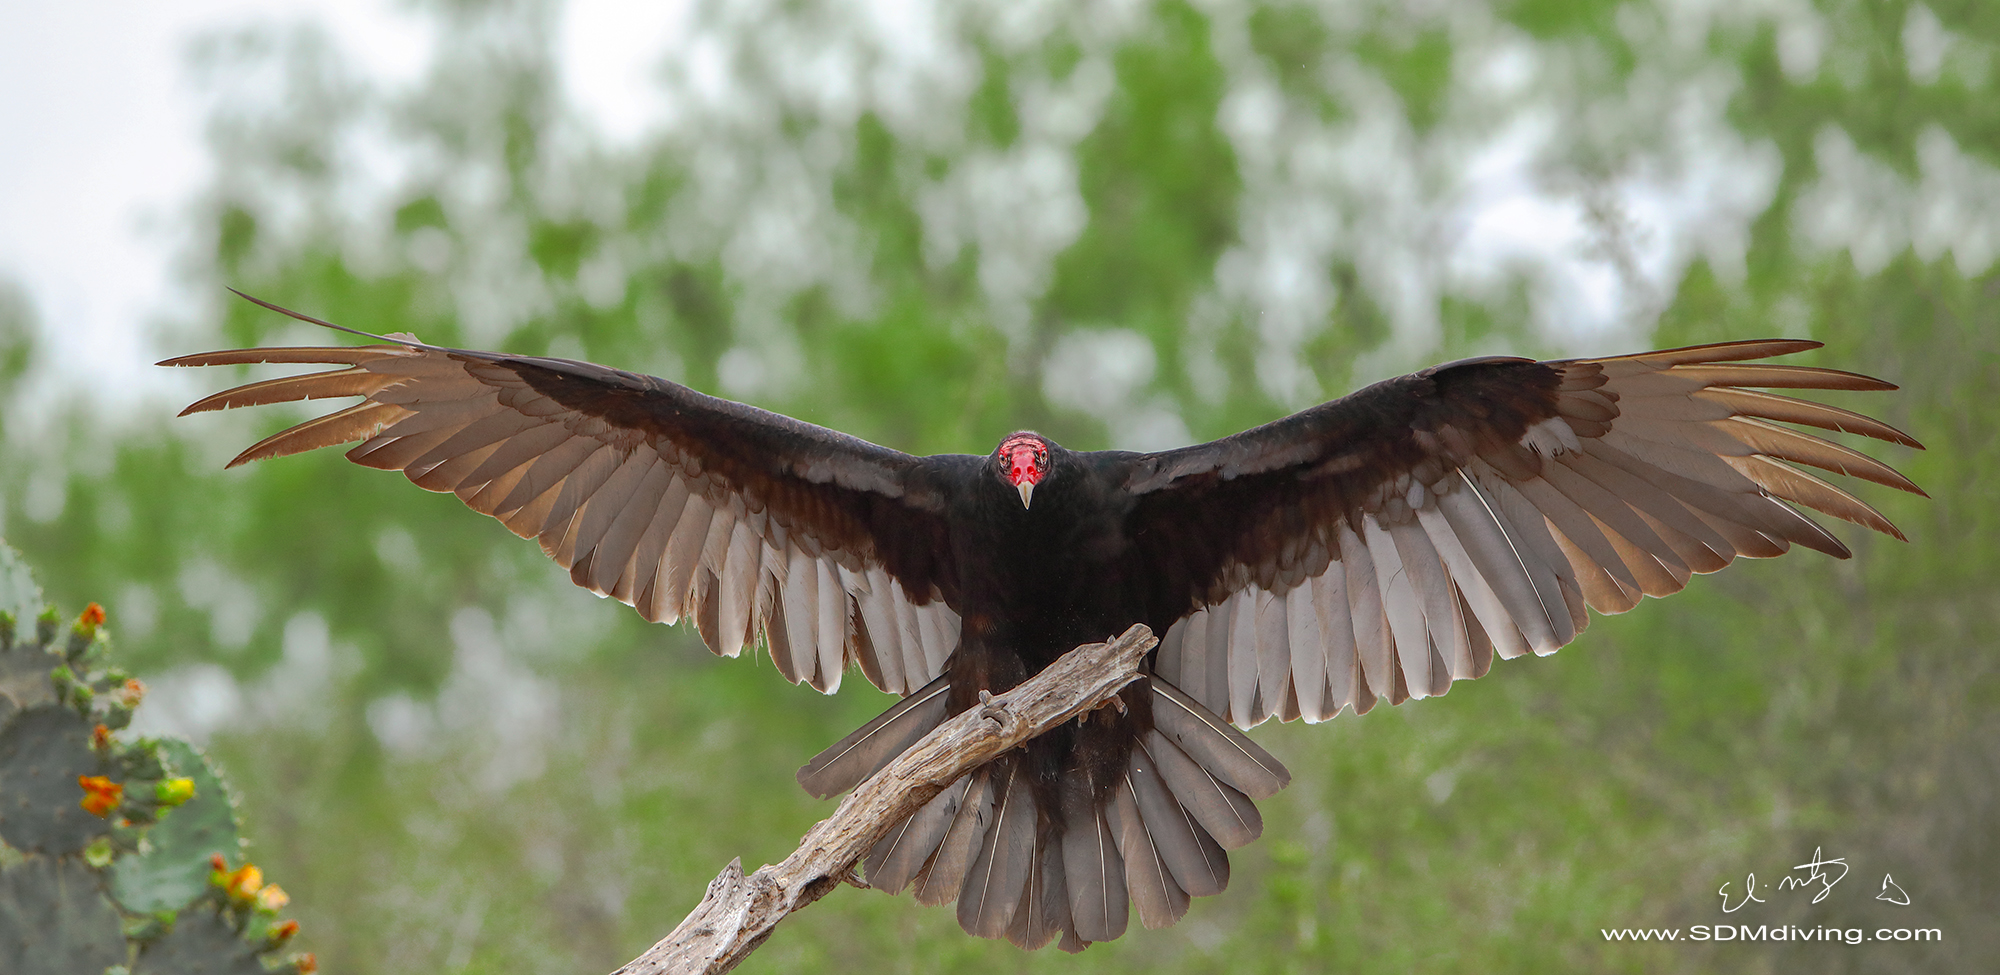 1. Turkey vulture